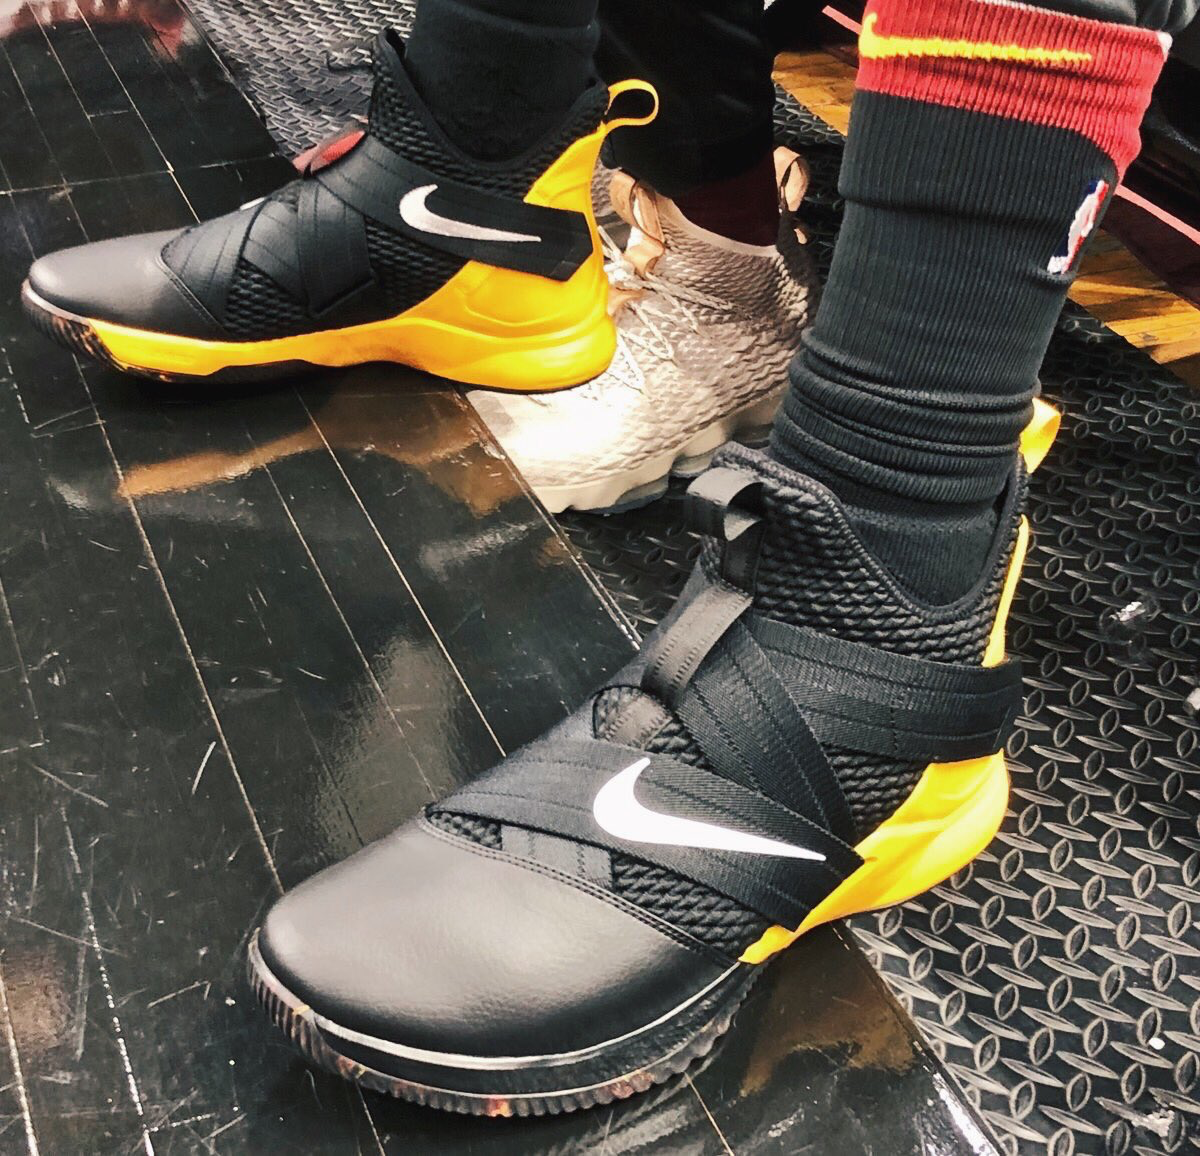 finest selection 4473e 7a888 RealTristan13 debuts a new LeBron Soldier 12 colorway for ...